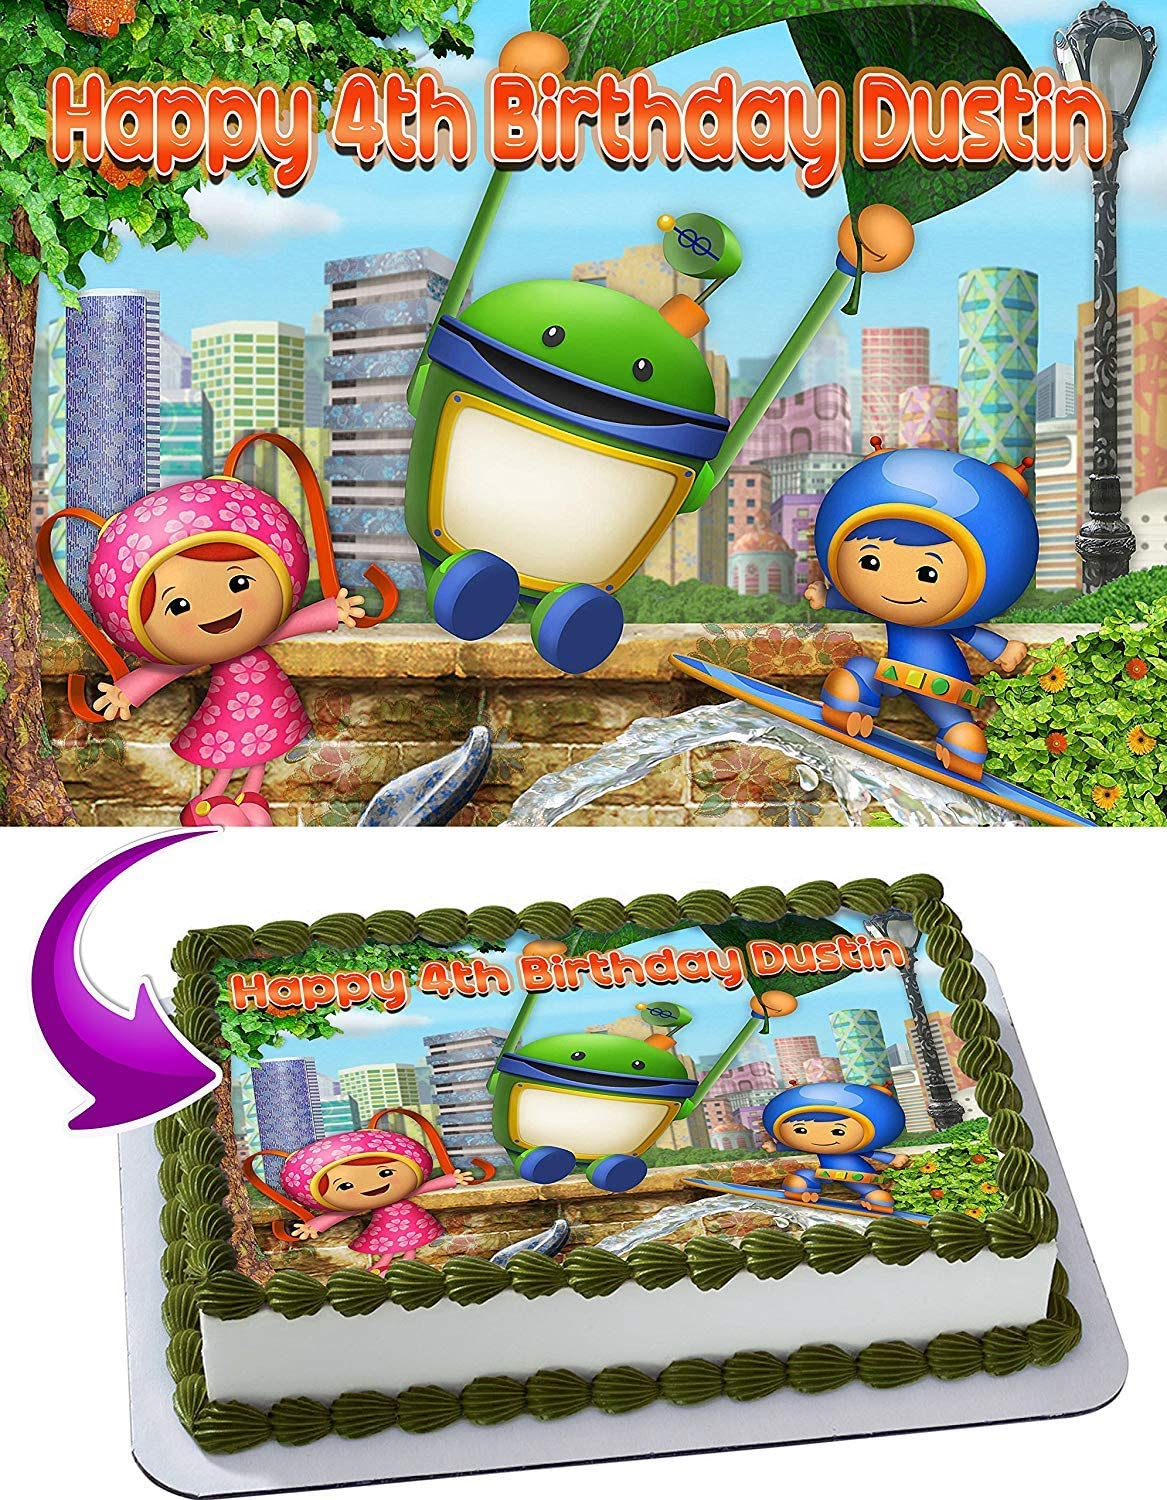 Awe Inspiring Amazon Com Team Umizoomi Birthday Cake Personalized Cake Toppers Personalised Birthday Cards Paralily Jamesorg